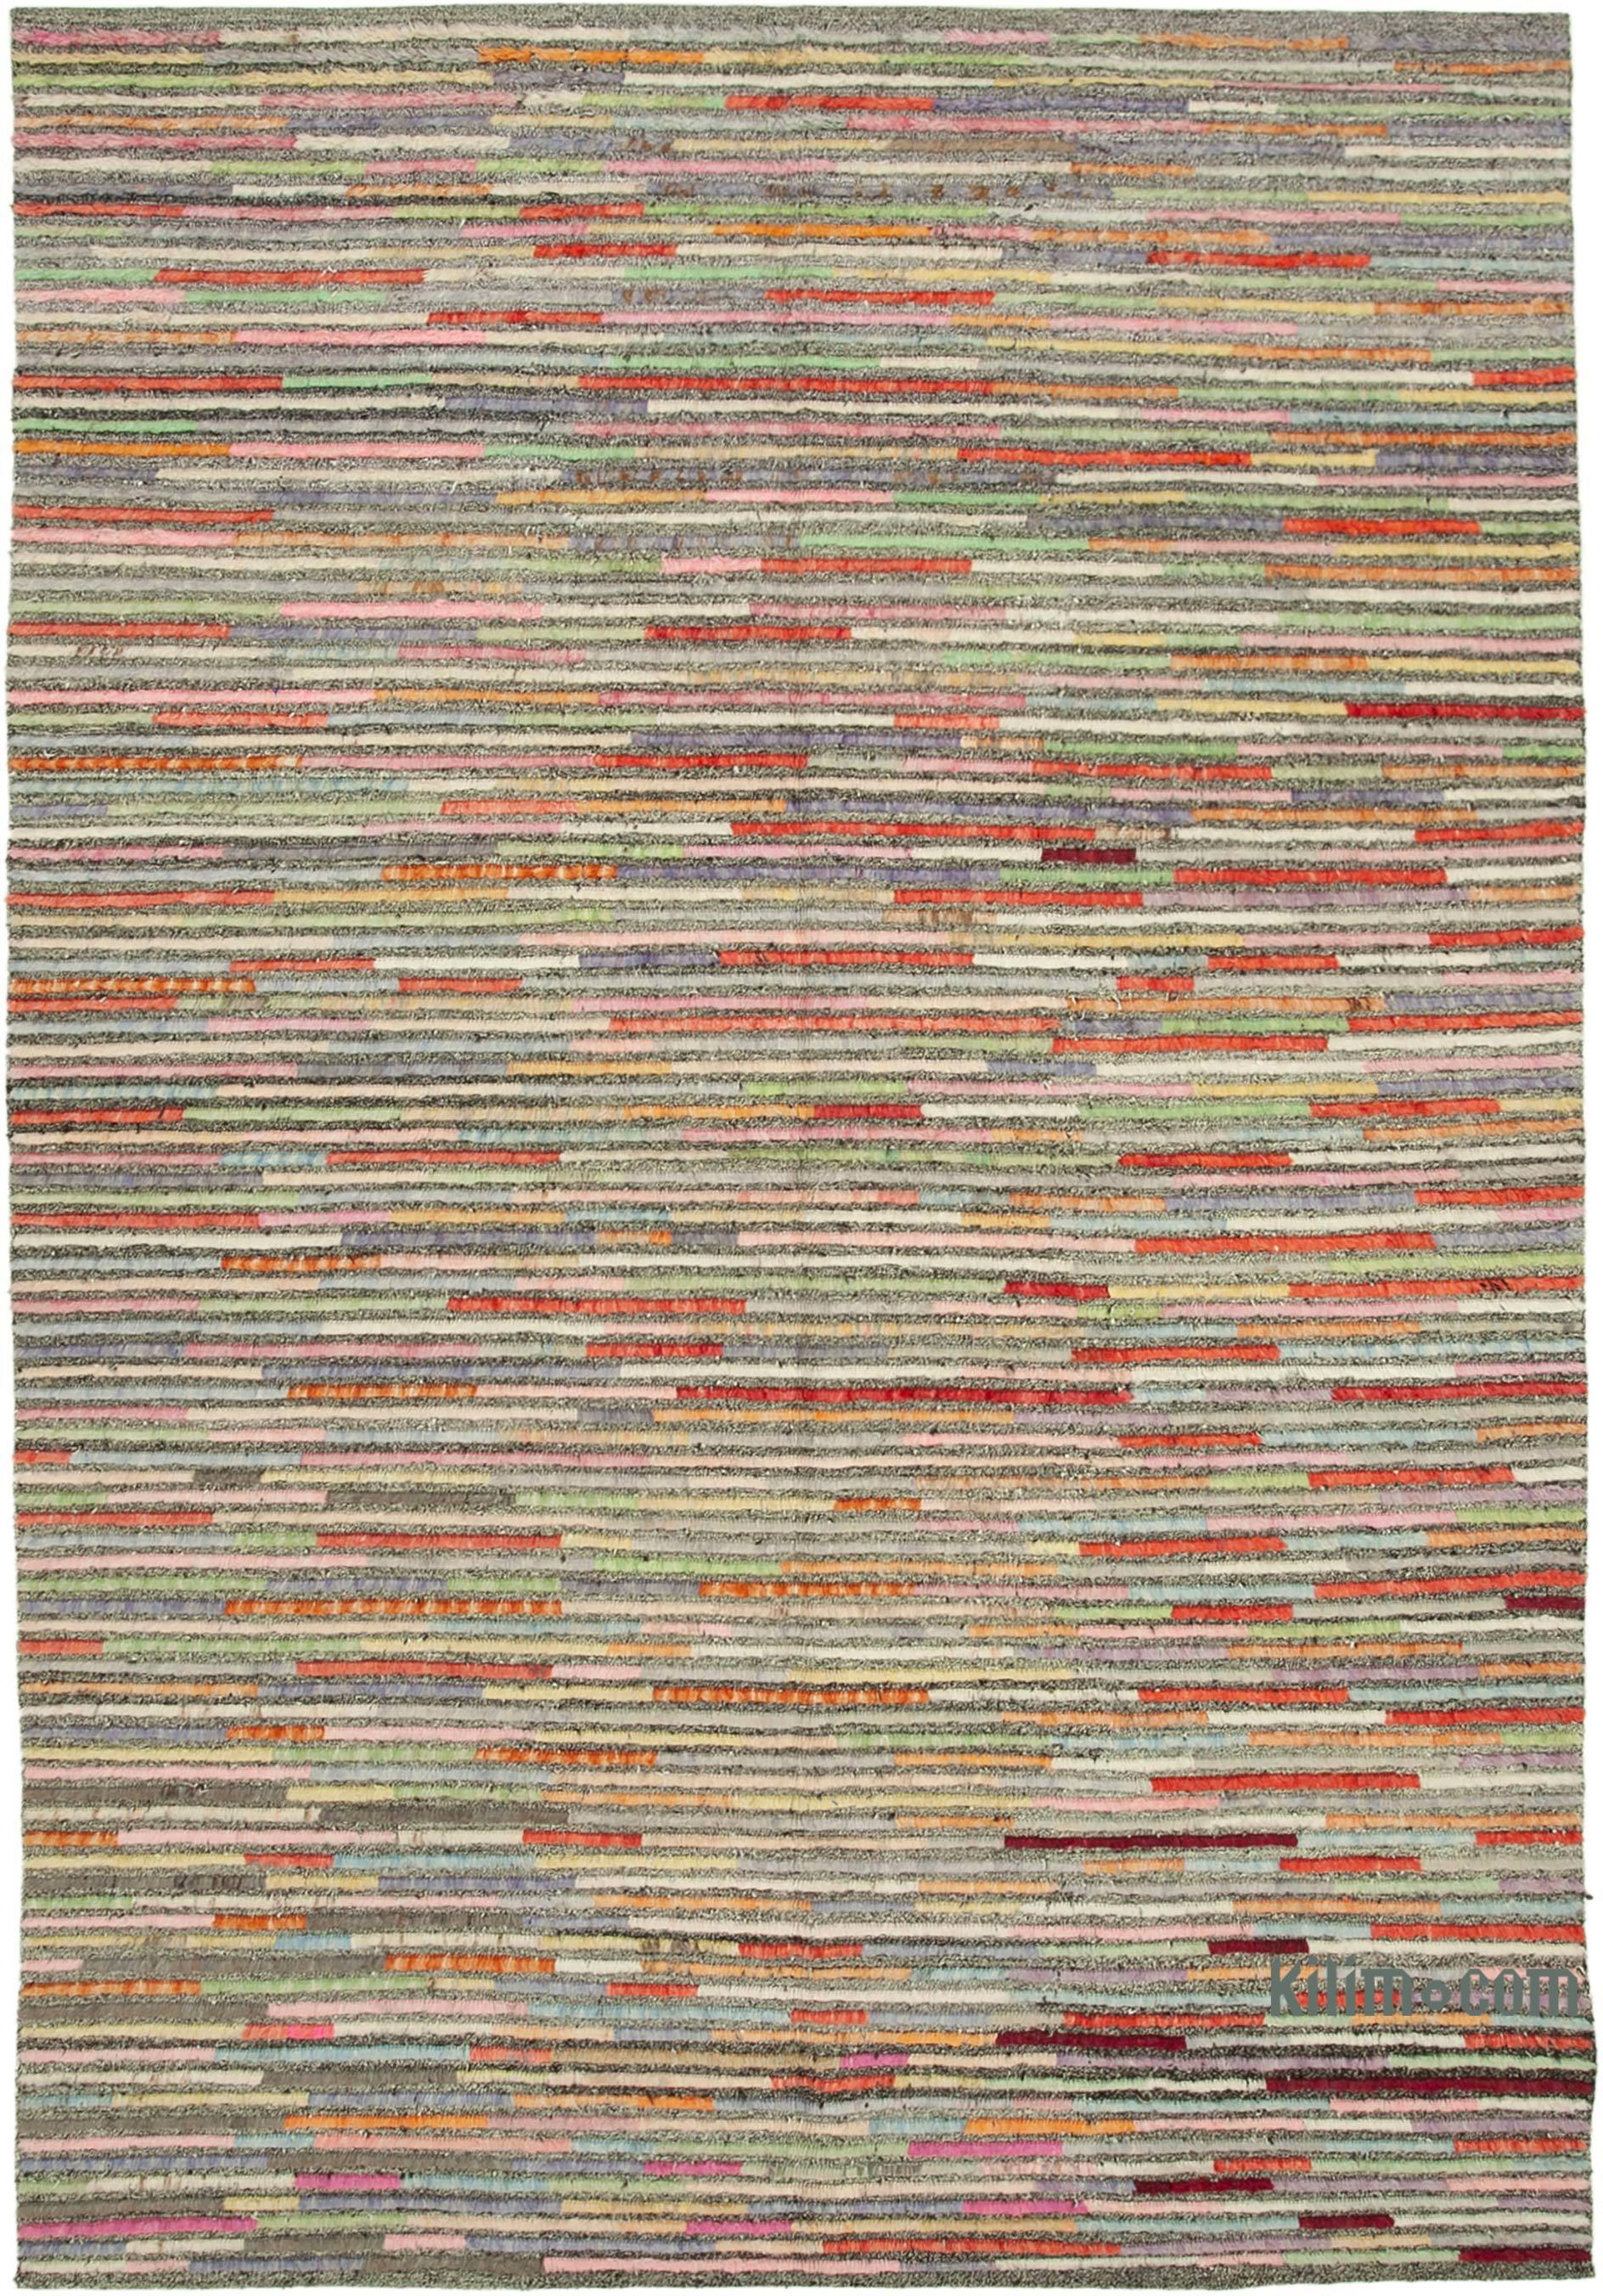 4aeb439700 K0037111 Multicolor New Contemporary Hand-Knotted Wool Rug   Kilim.com: The  Source for Authentic Vintage Rugs, Kilims, Overdyed Oriental Rugs, ...